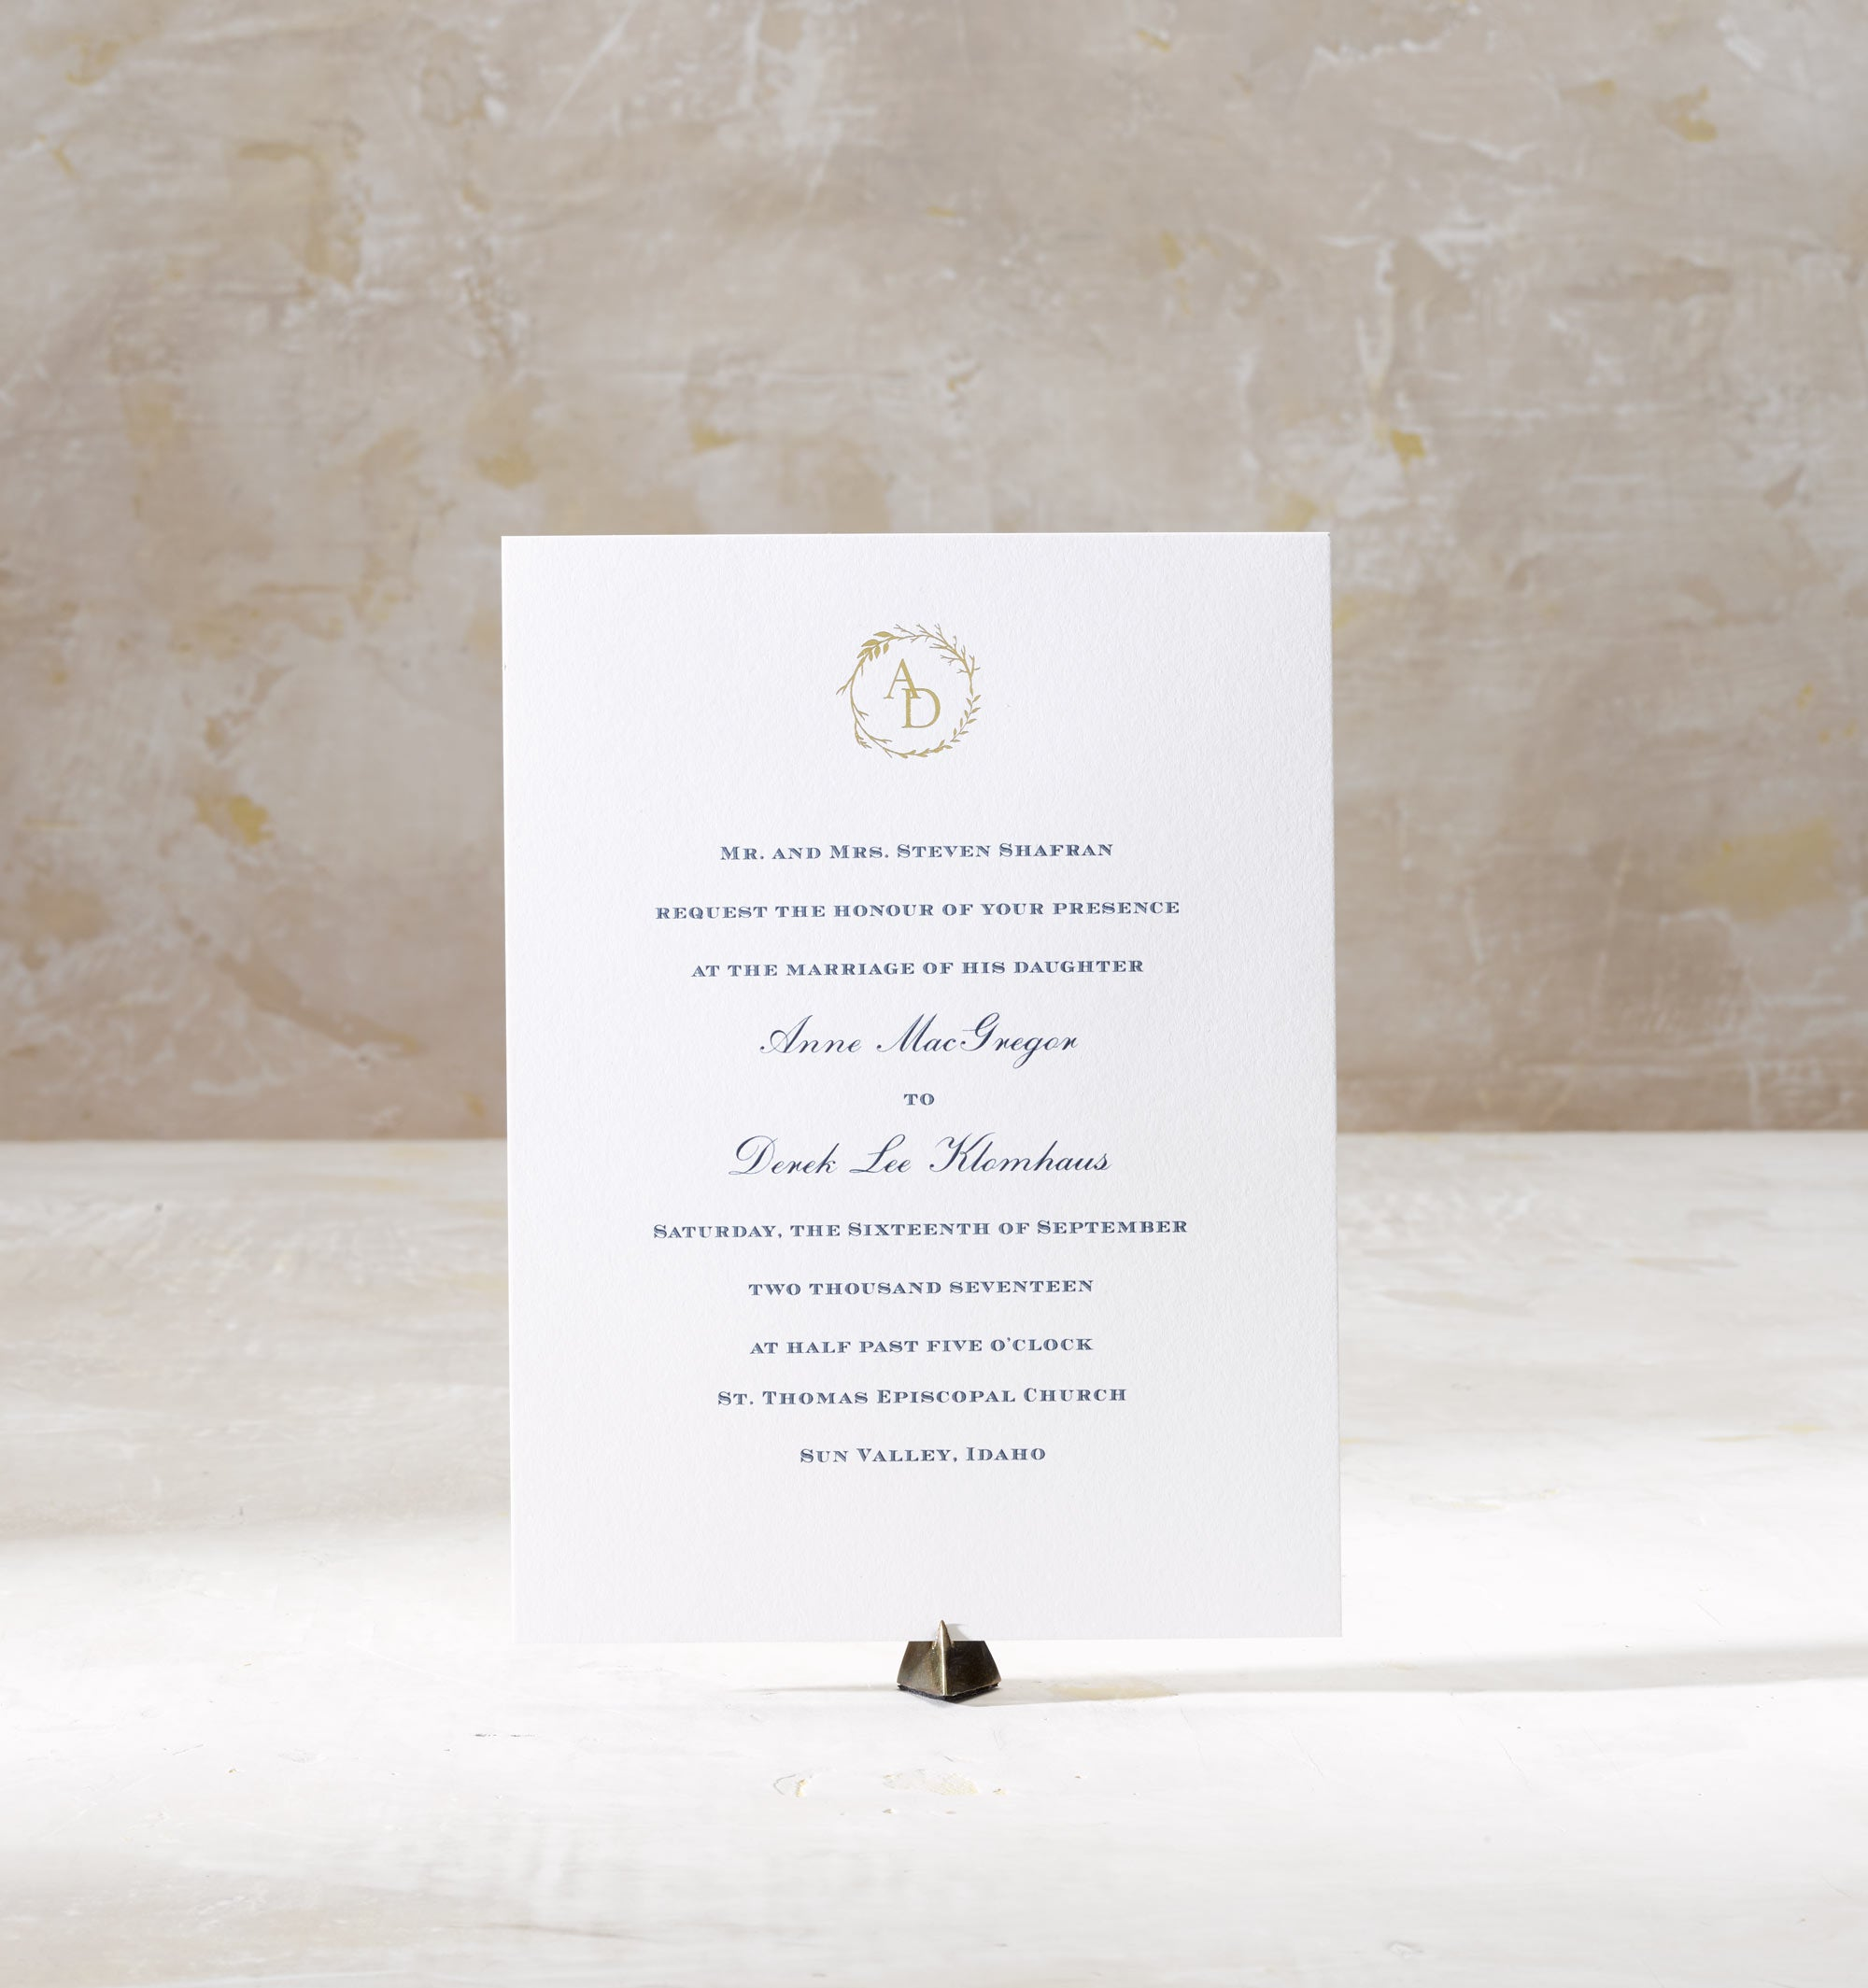 Anne & Derek is an engraved & foil stamped suite in navy and gold, set in Sun Valley Indiana. Call us toll-free at 1-800-995-1549 or email us at hello@pickettspress.com